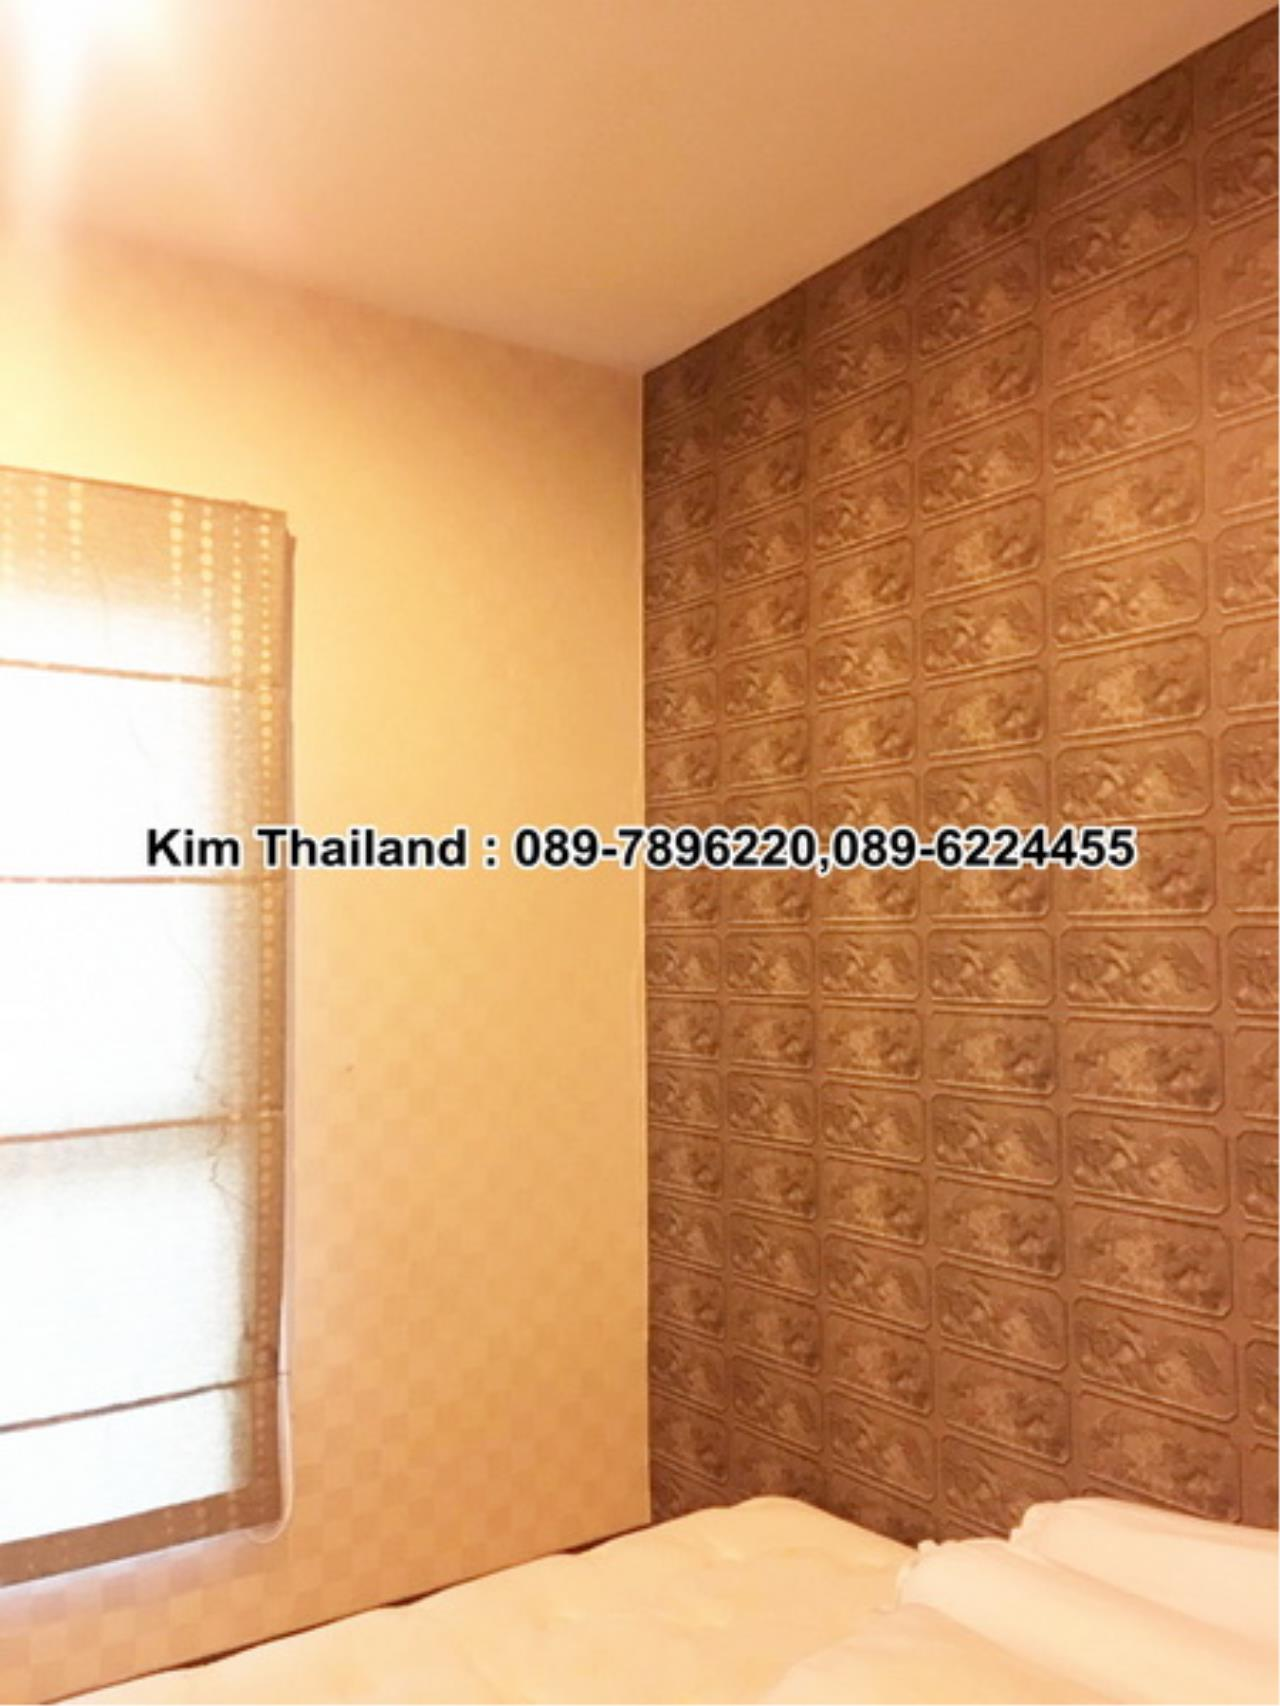 BKKcondorental Agency's For rent, Condo The Parkland Grand Asoke-Petchaburi., Area 35 sq.m. 1 bedroom. Rental 16,500 THB per month. 7